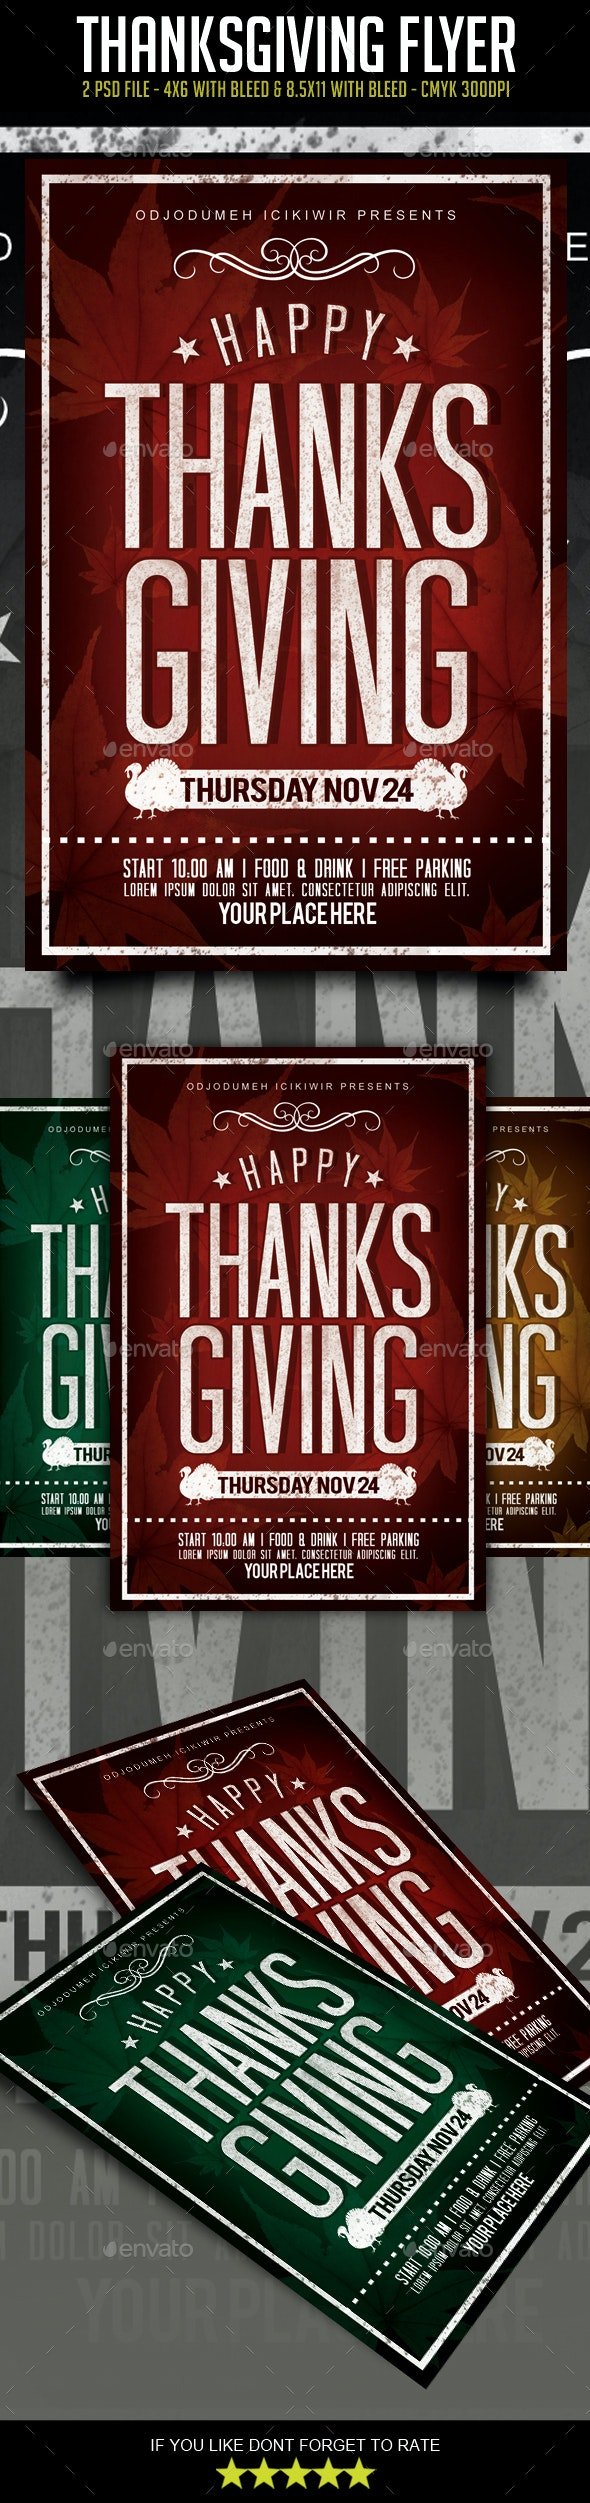 Thanksgiving Flyer - Events Flyers